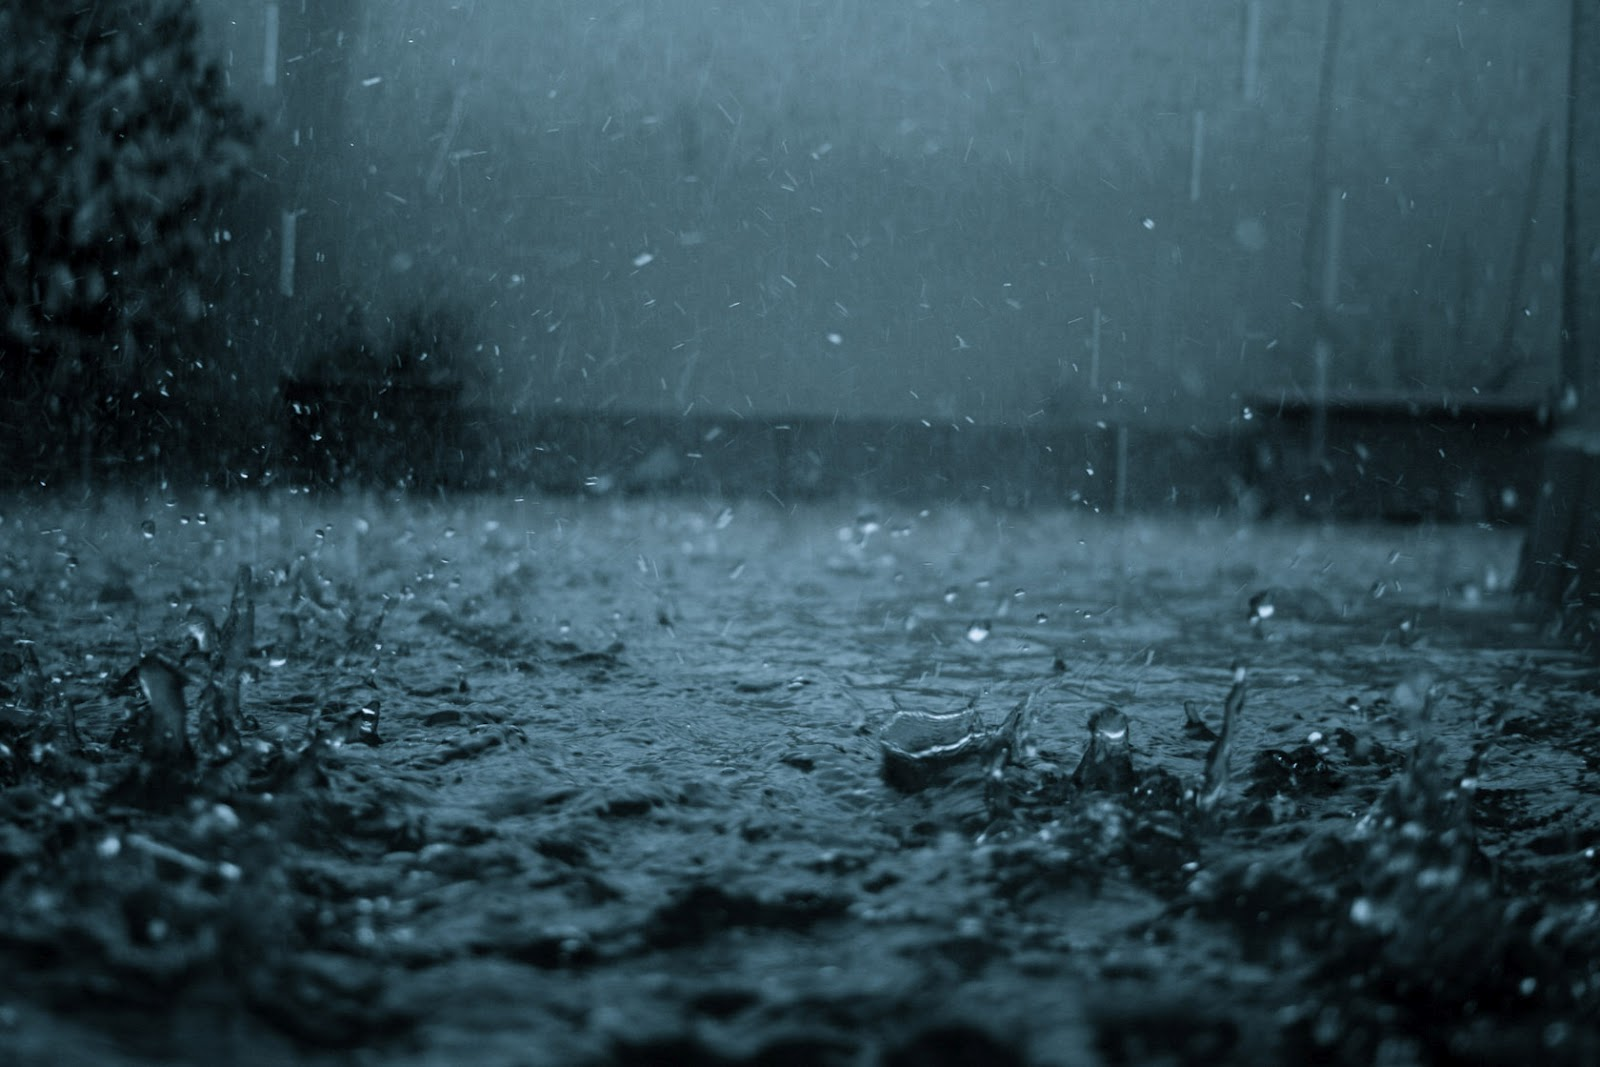 Rain Love Wallpaper Desktop : HD Snapshots: rain wallpapers love wallpapers alone wallpapers sad wallpapers missing u ...